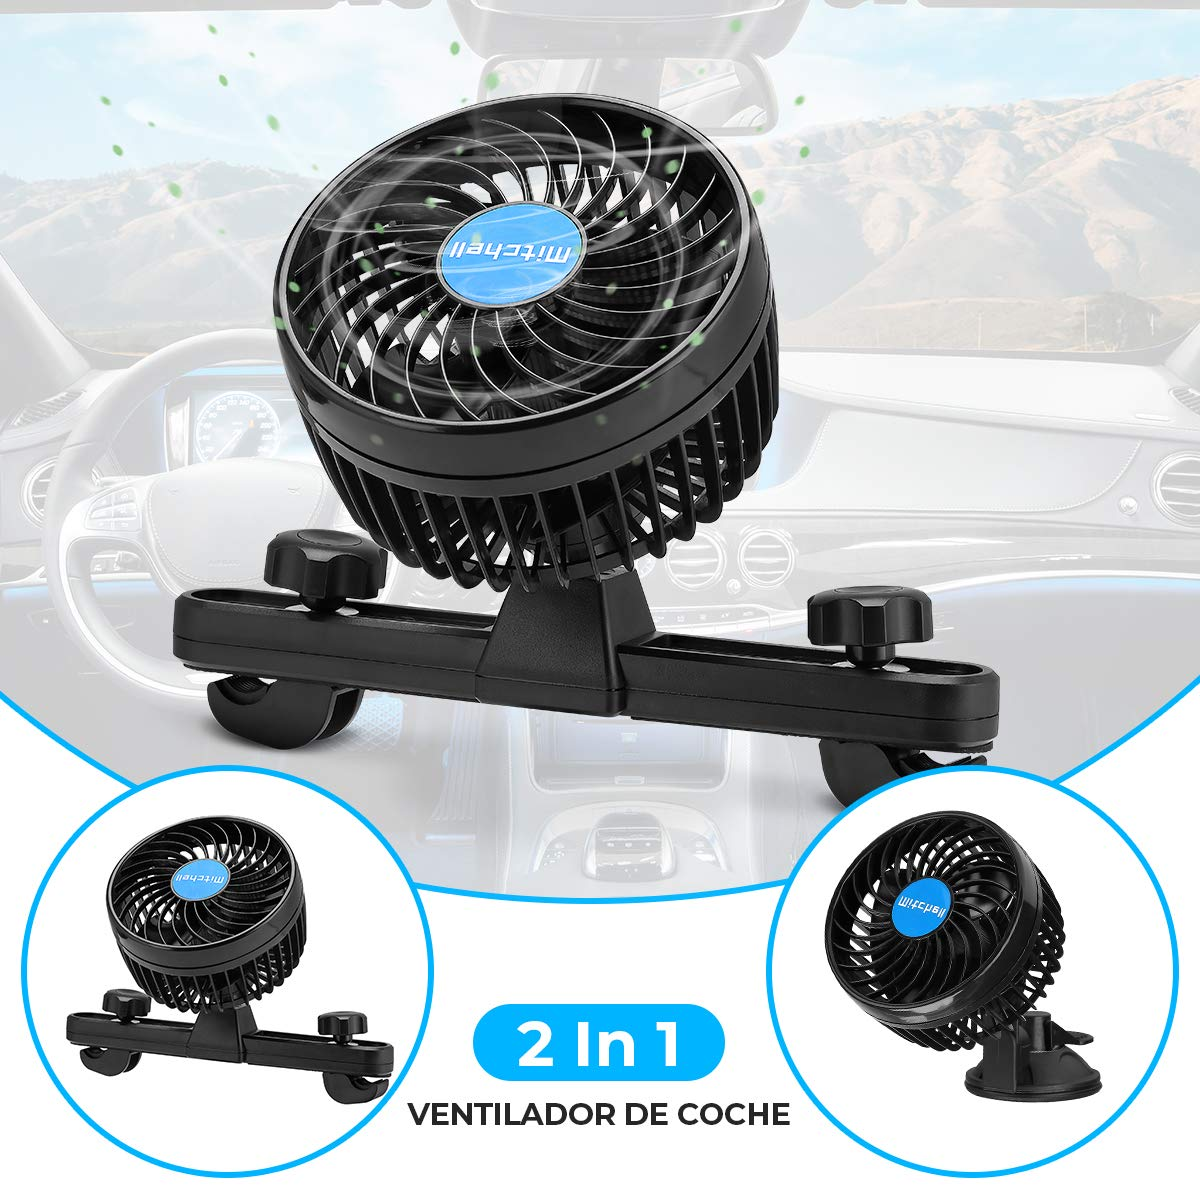 Amazon.es: Ventilador Coche Mechero Portatil Electrico Silencioso 12V Mini Fan de 360 Grados Rotativo 2 Soportes ...